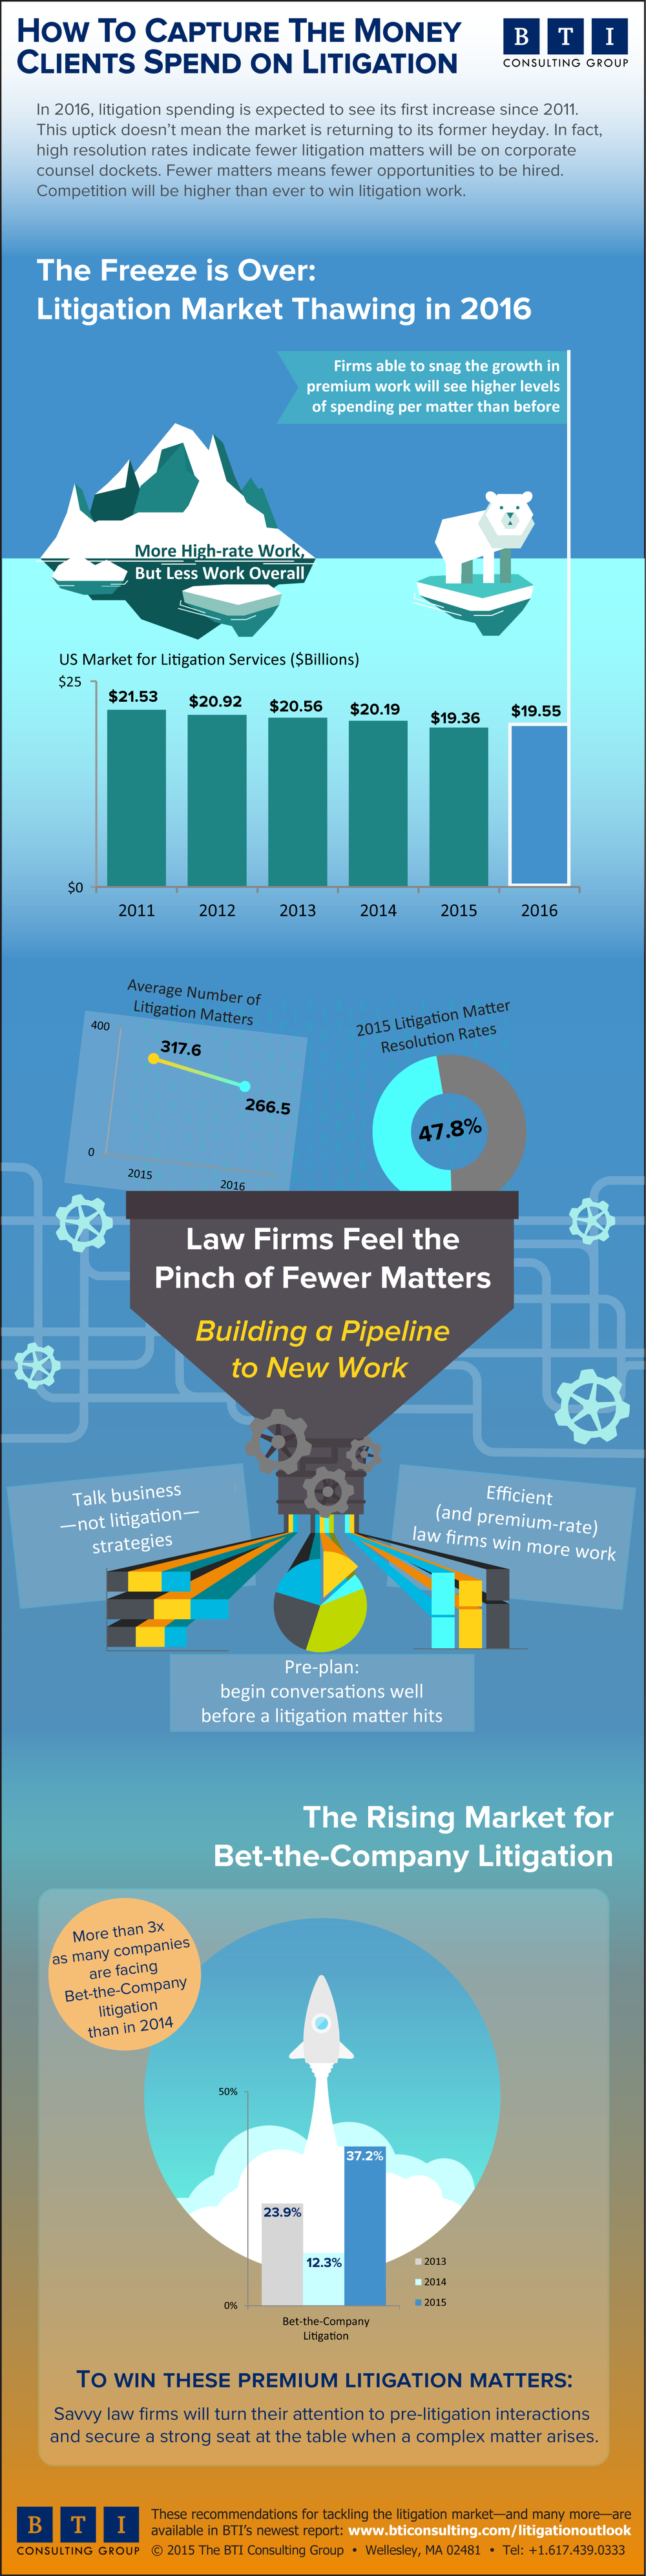 BTI Litigation Trends 2016 Infographic